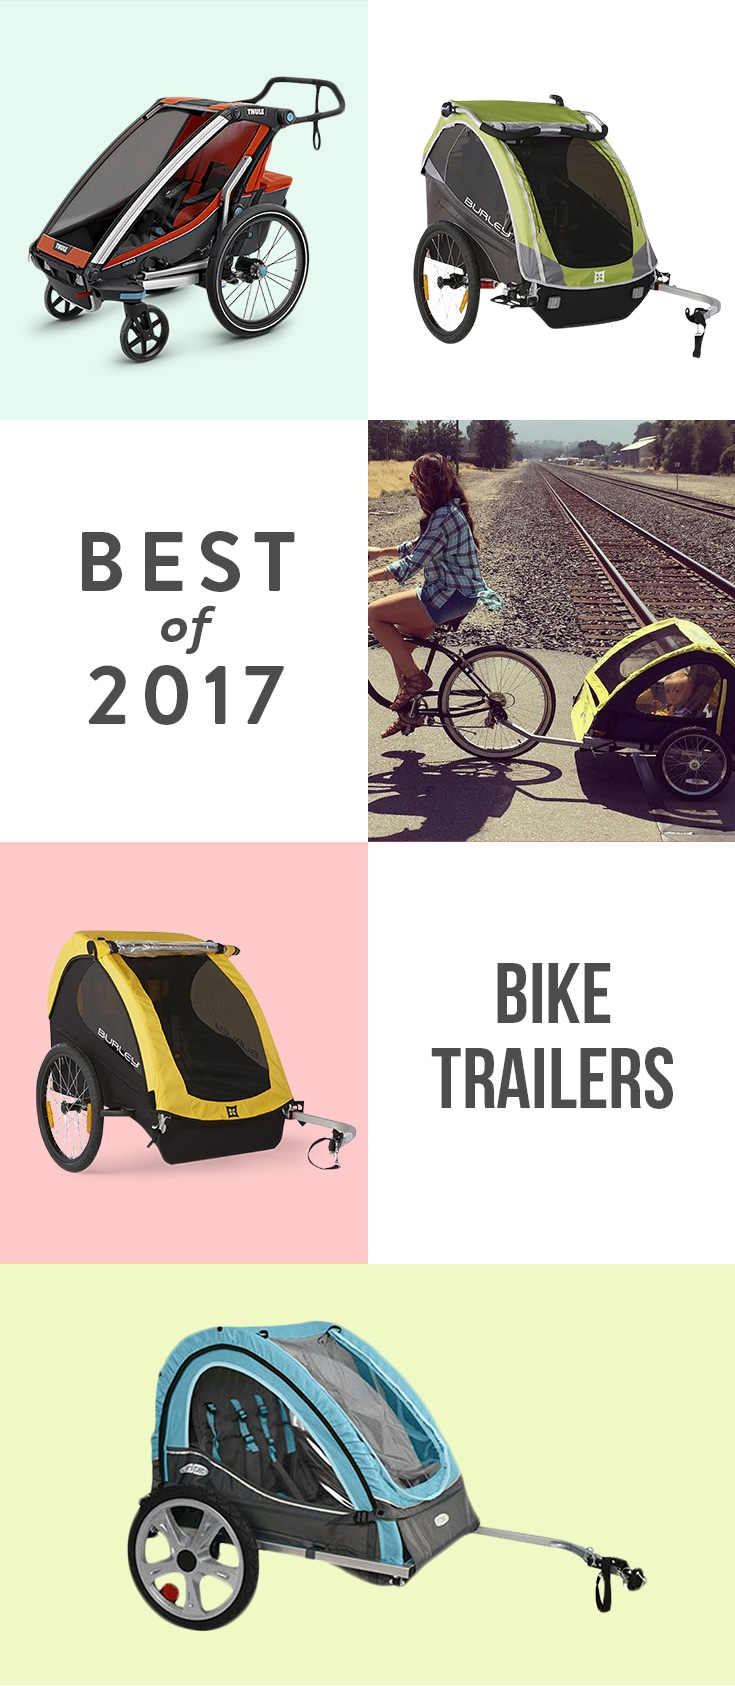 There's a lot to love about bike trailers: they can tote 1-2 kids (plus gear!), they're comfortable for little passengers, and many convert into joggers and strollers. Ride on.